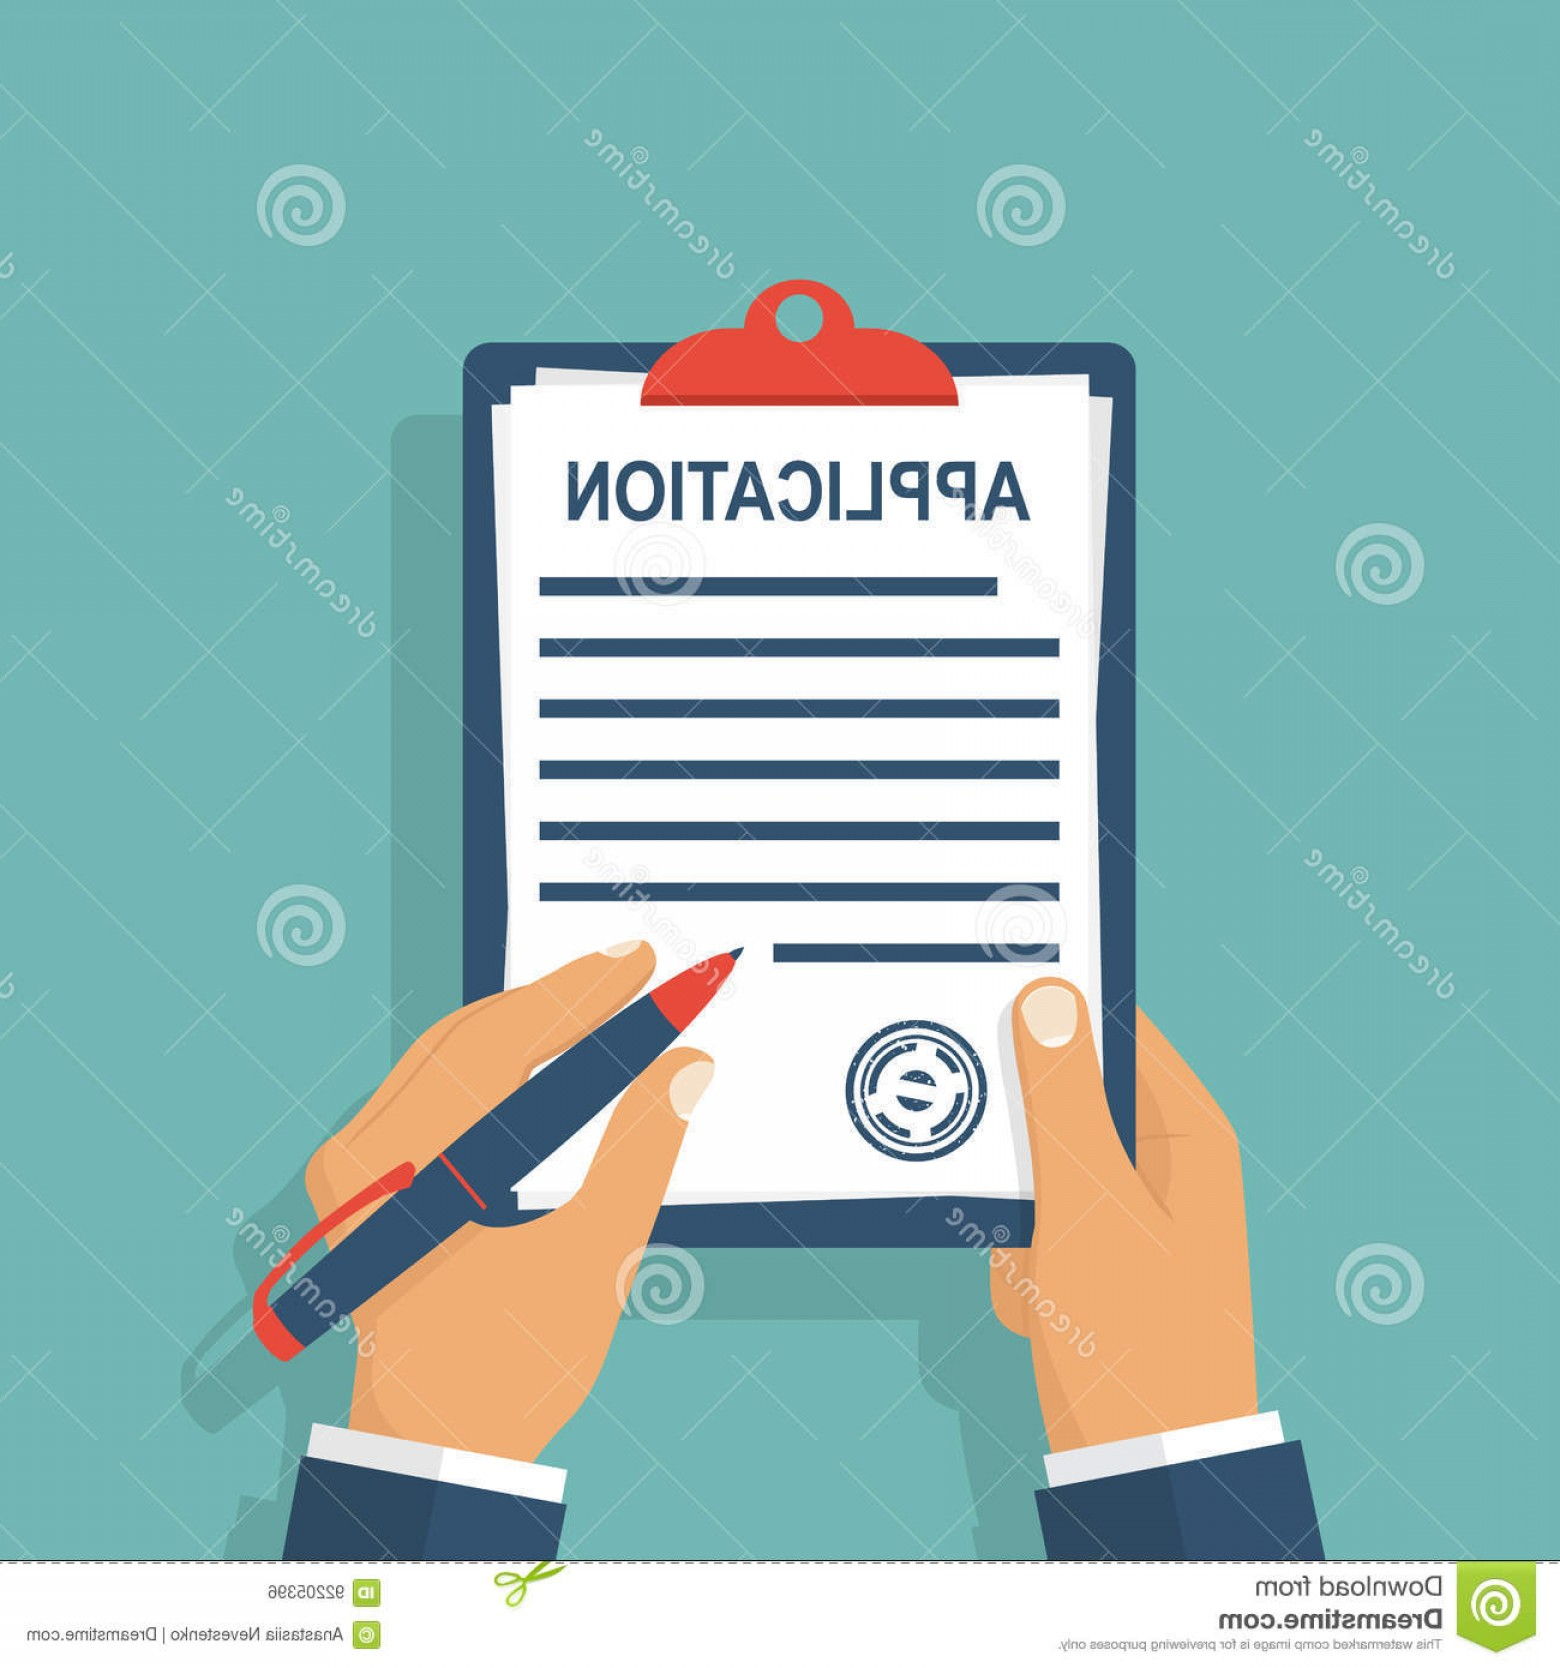 Vector Application Form: Stock Illustration Application Form Write Man Clipboard His Hand Fills Employment Documents Vector Illustration Flat Design Image